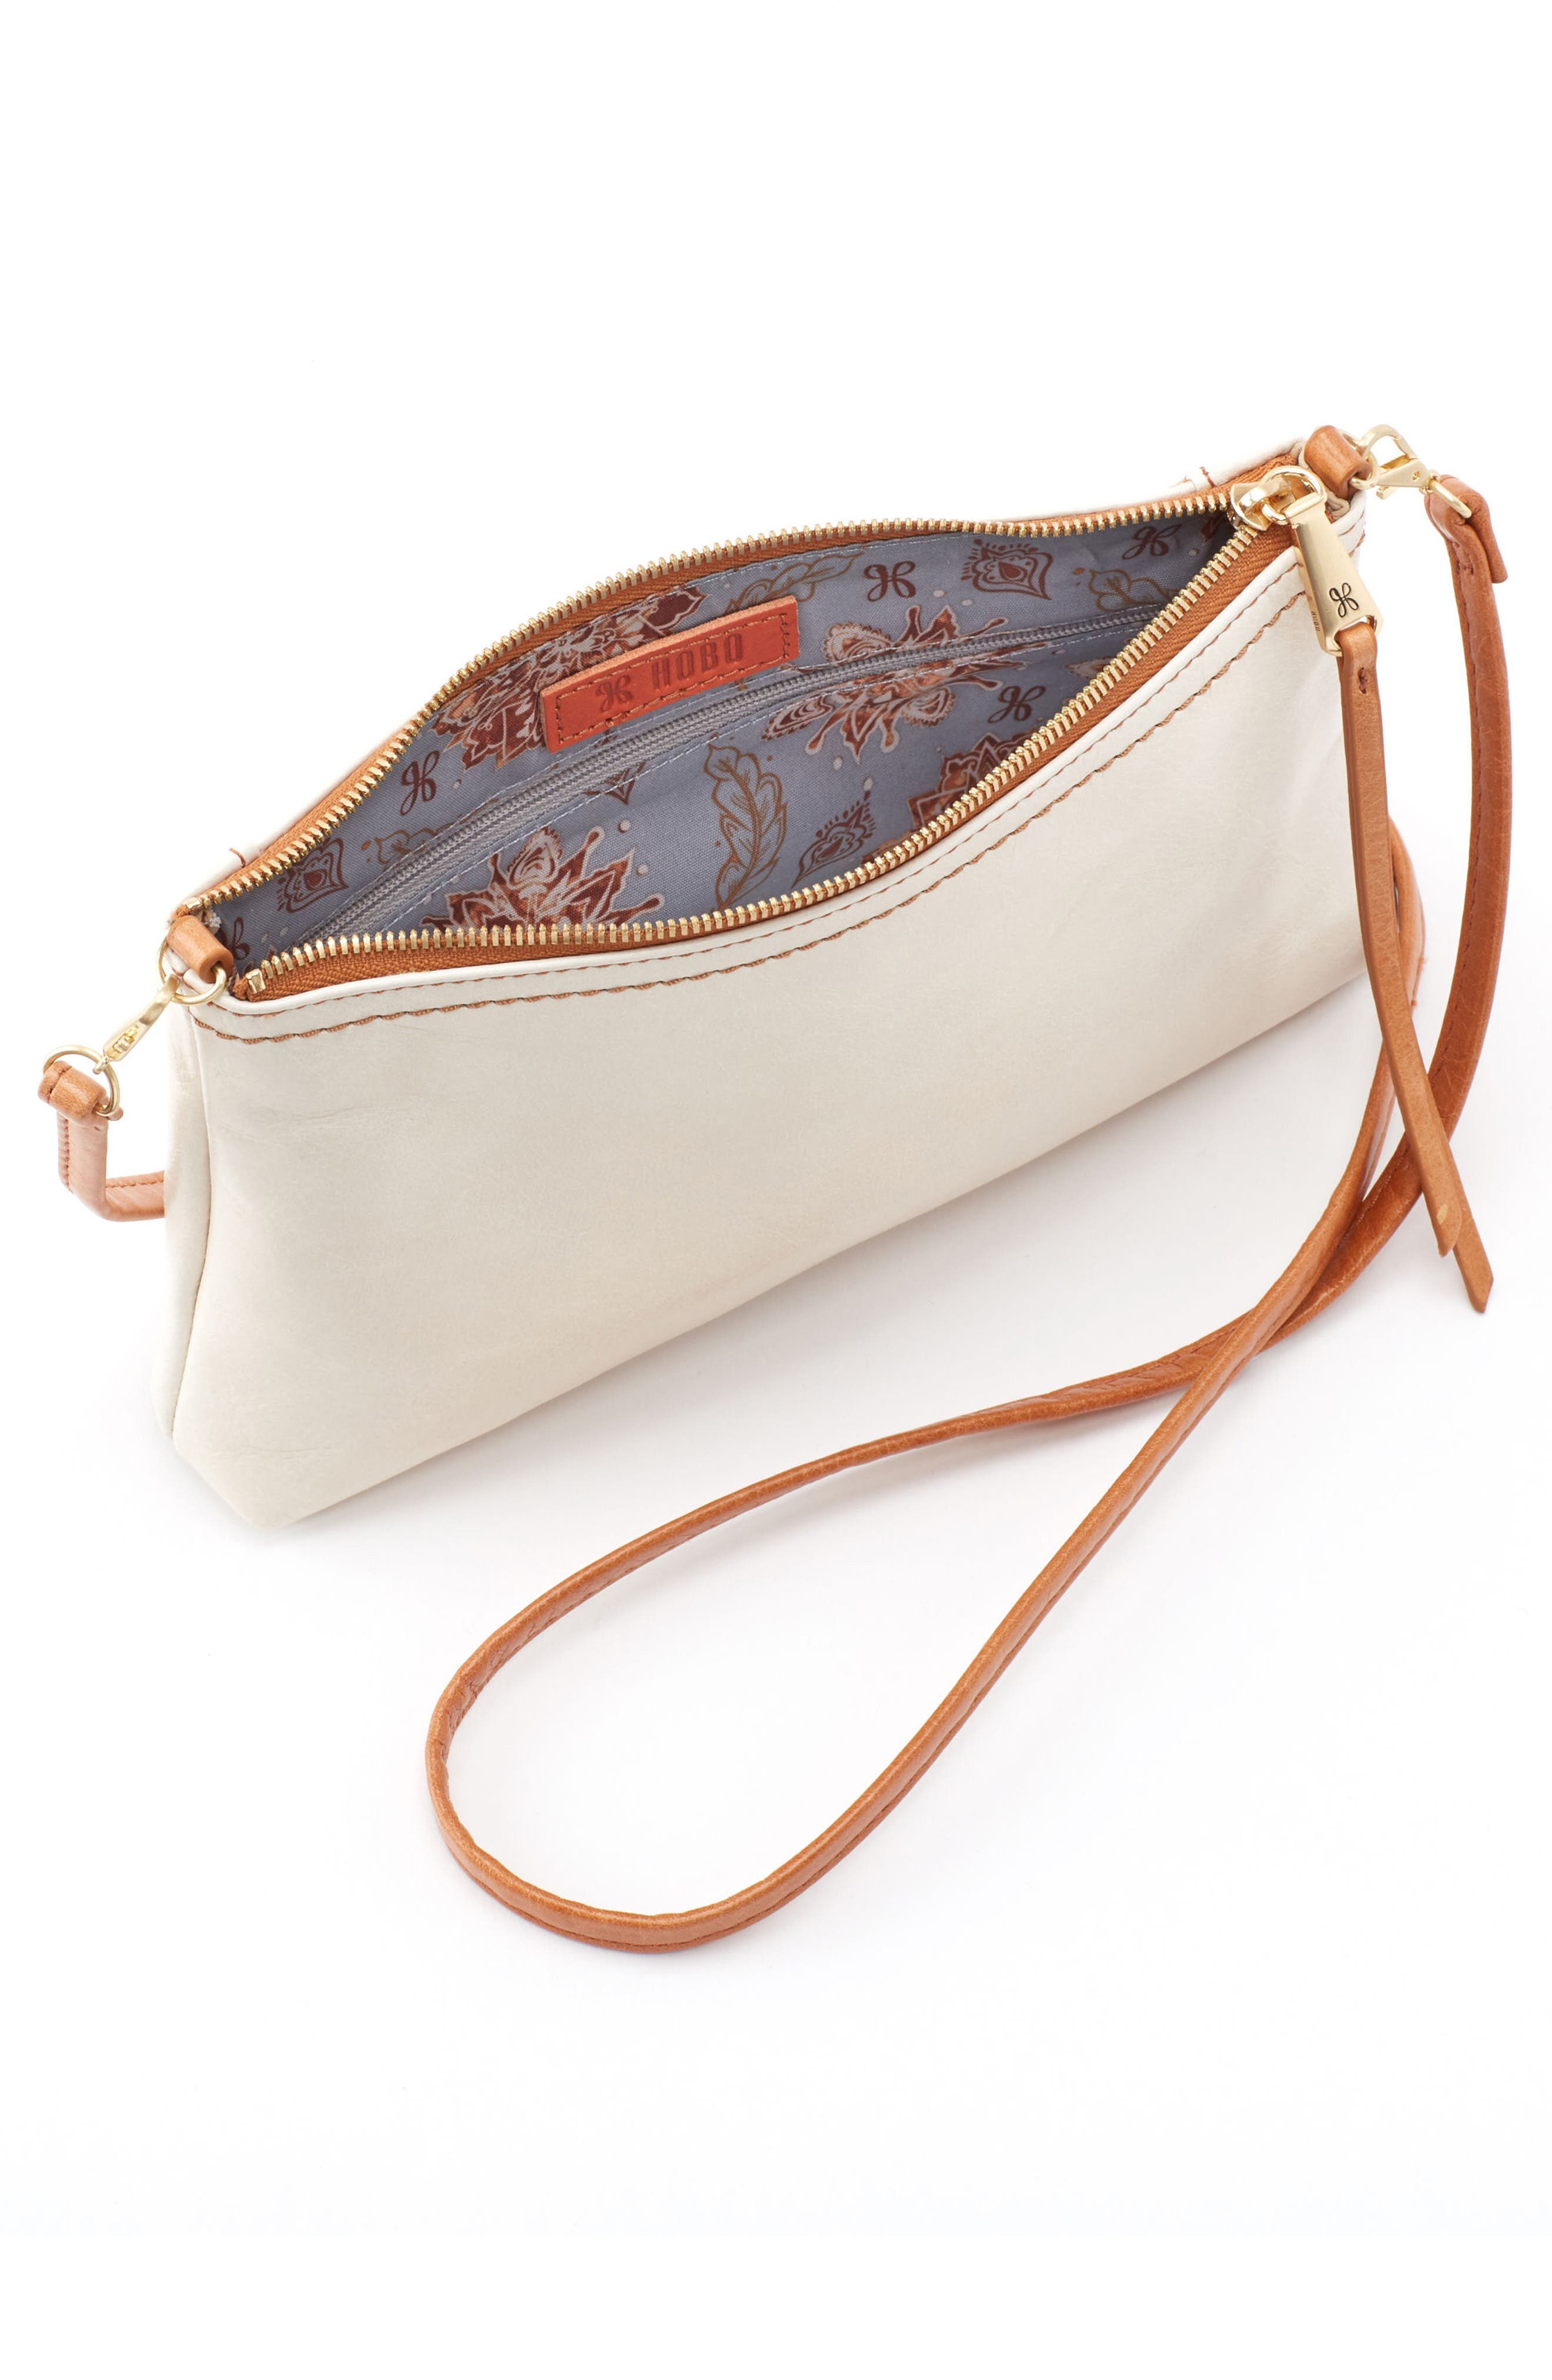 'Darcy' Leather Crossbody Bag,                             Alternate thumbnail 52, color,